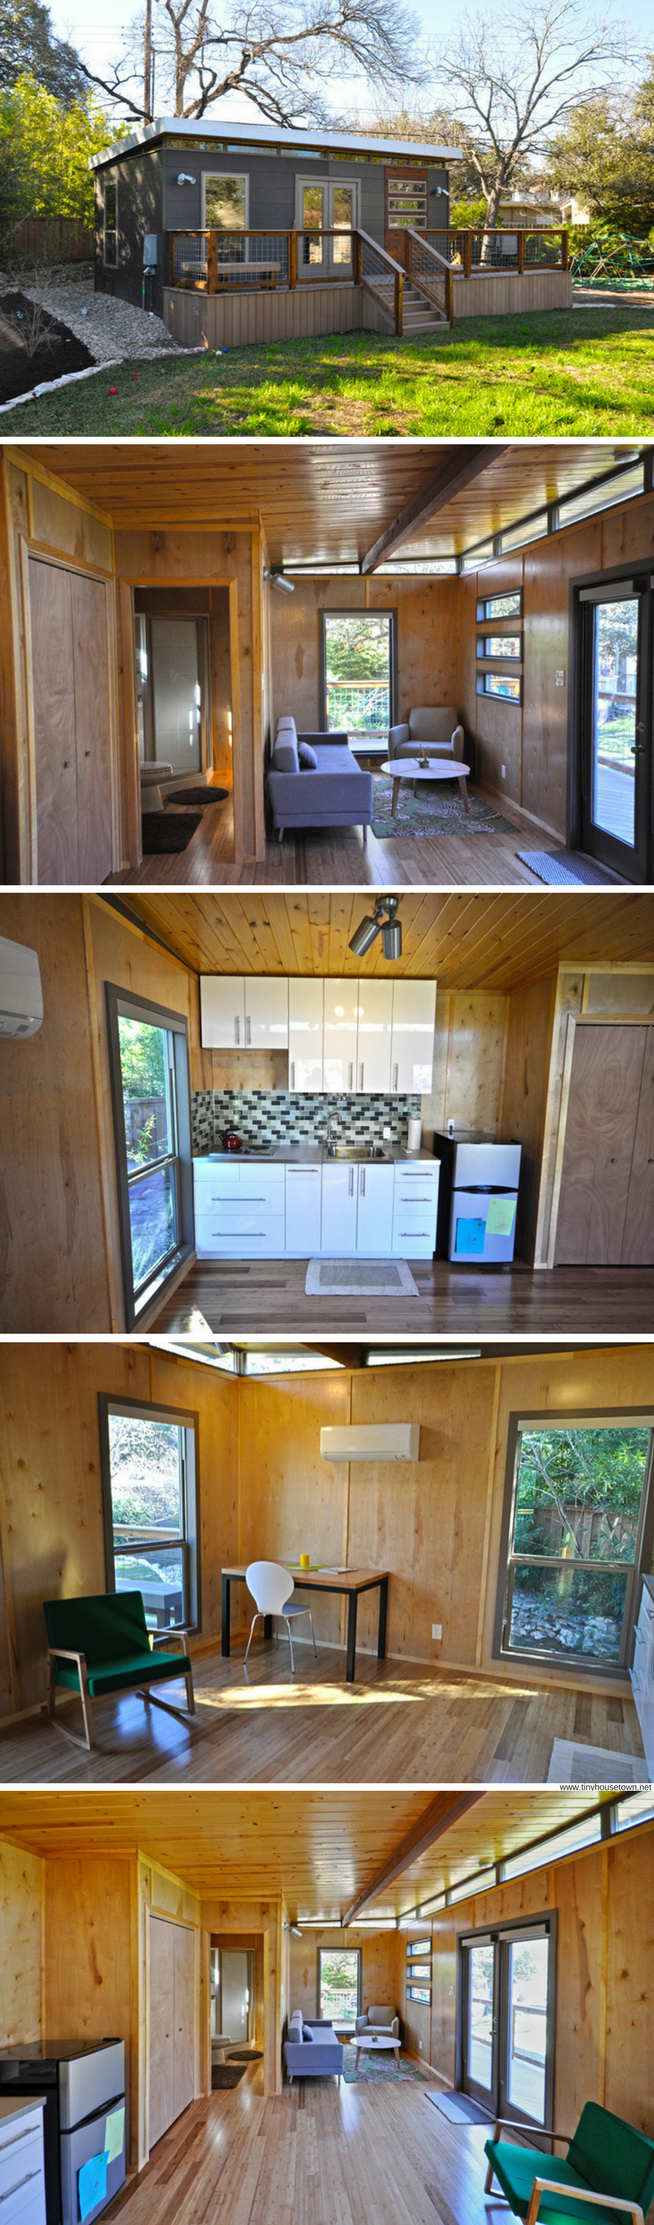 Modern Cabin (14' x 24') | Small/Tiny House & Apartments ... on